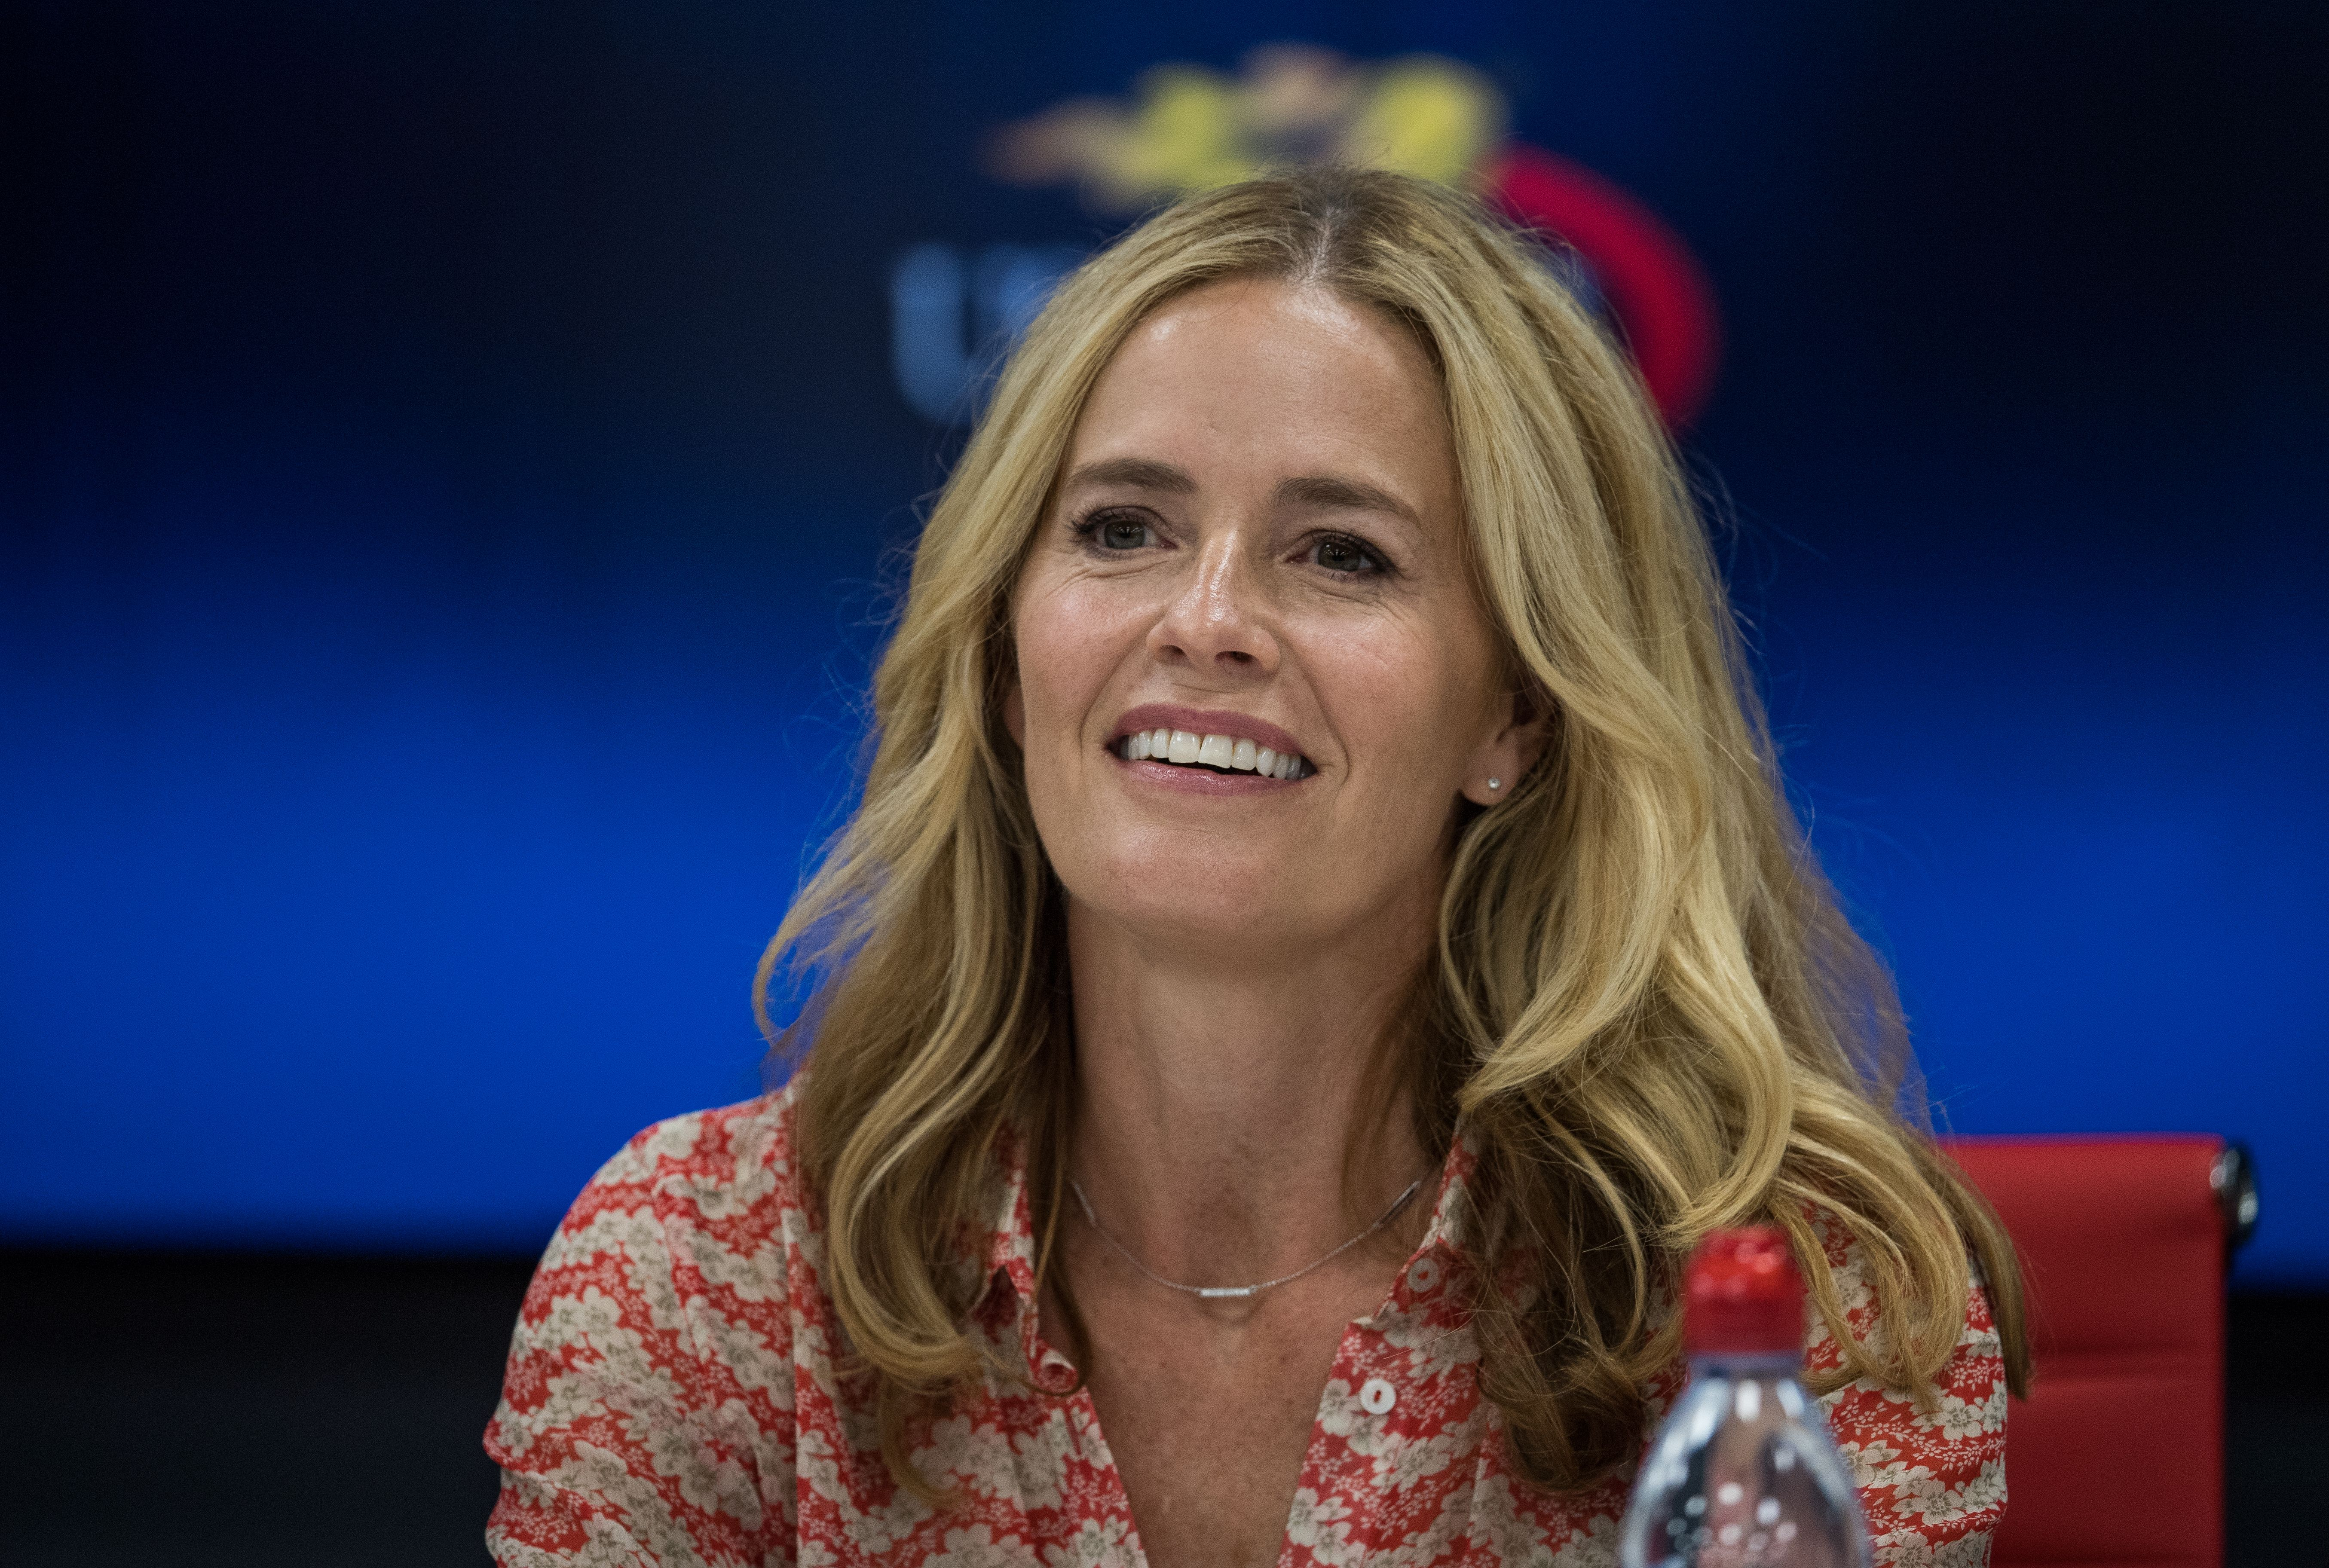 Elisabeth Shue to Star in The Boys Show - Entertainment